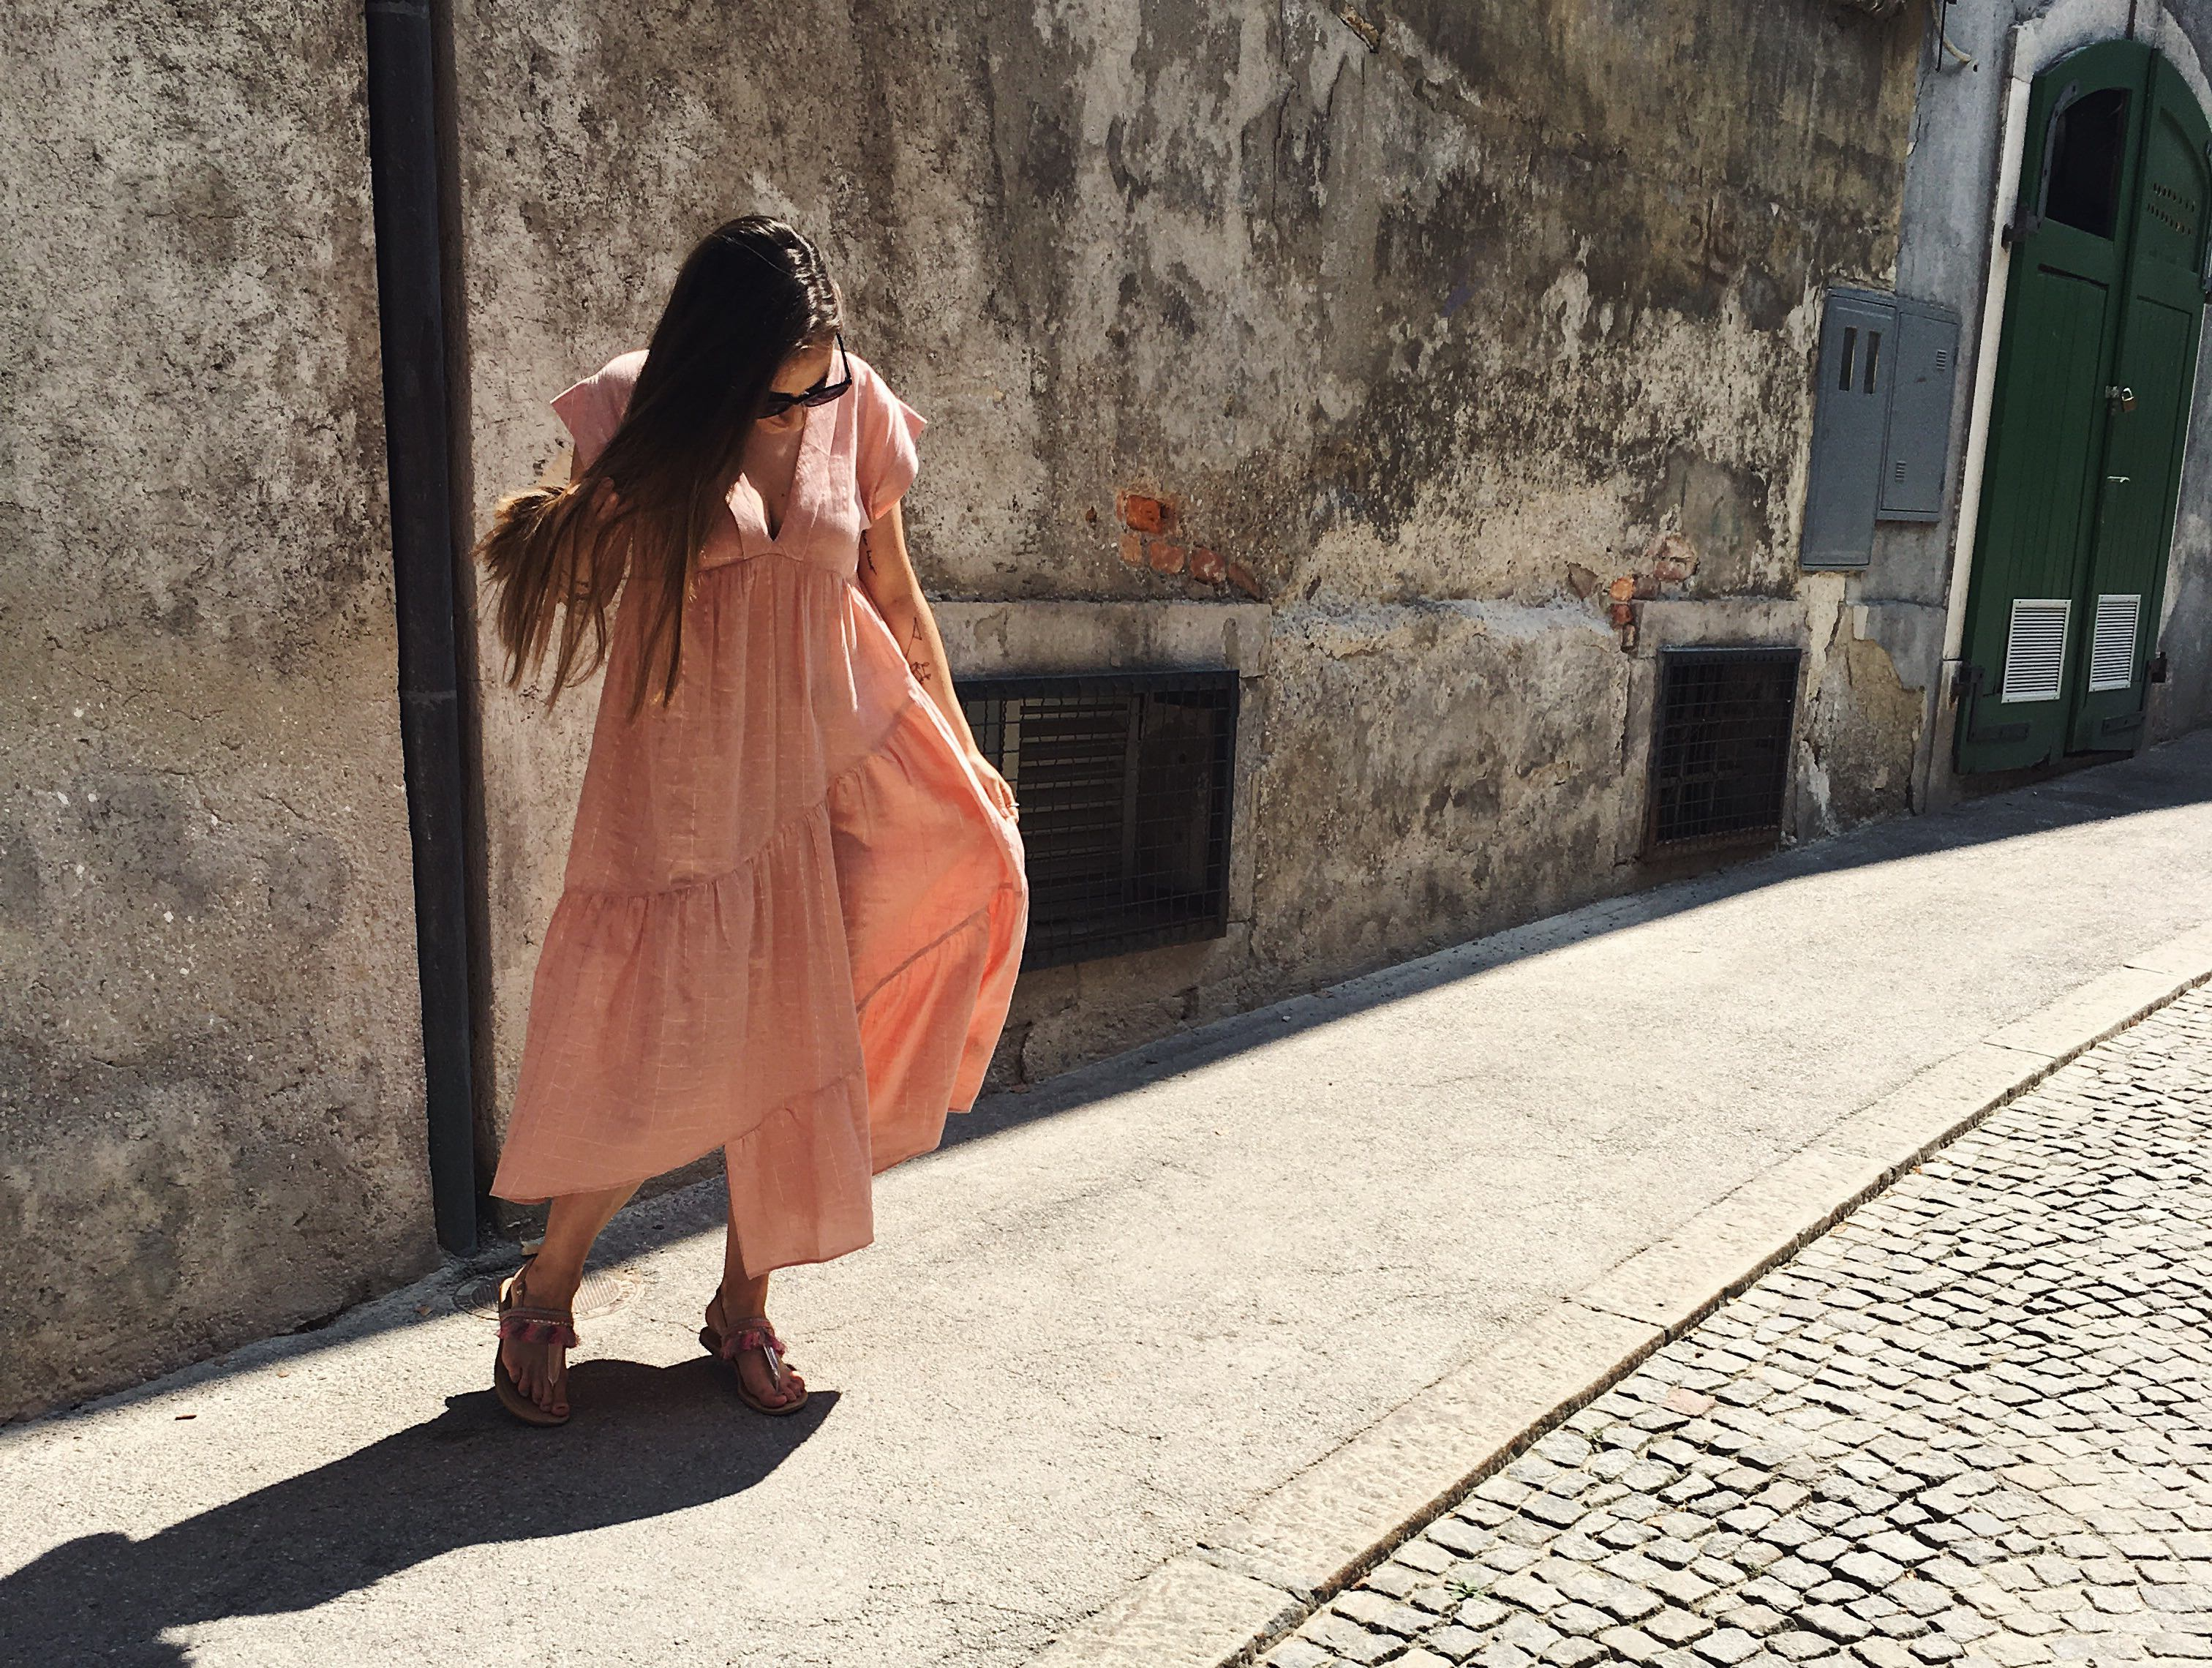 turning 26, pelamarela, blogger, lifestyle, personal, outfit, birthday, personal reflection, getting older, summer, summer outfit